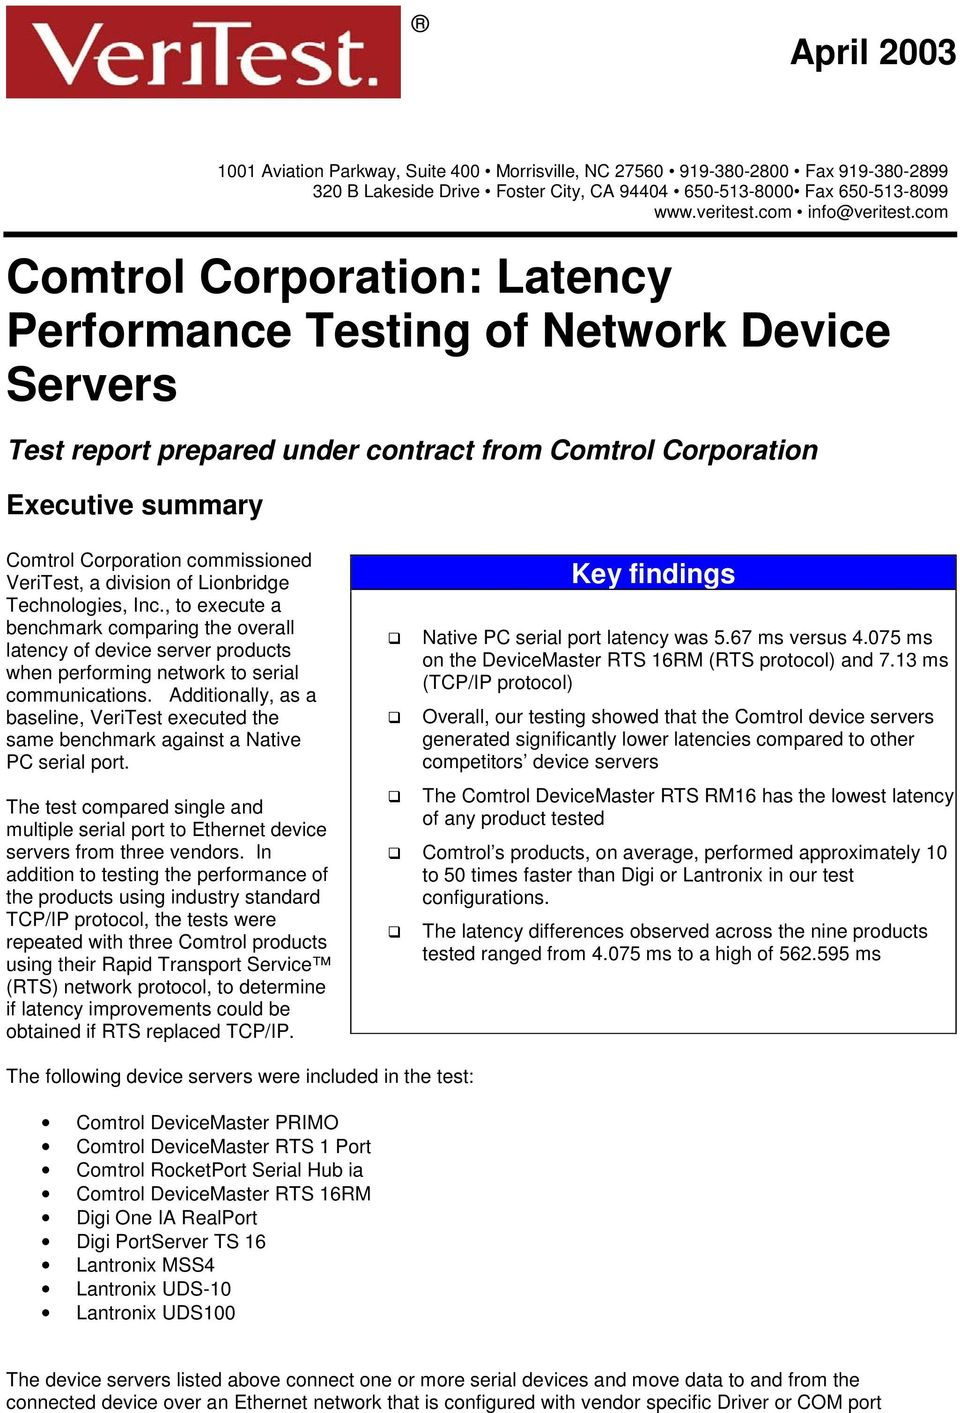 VeriTest, a division of Lionbridge Technologies, Inc., to execute a benchmark comparing the overall latency of device server products when performing network to serial communications.